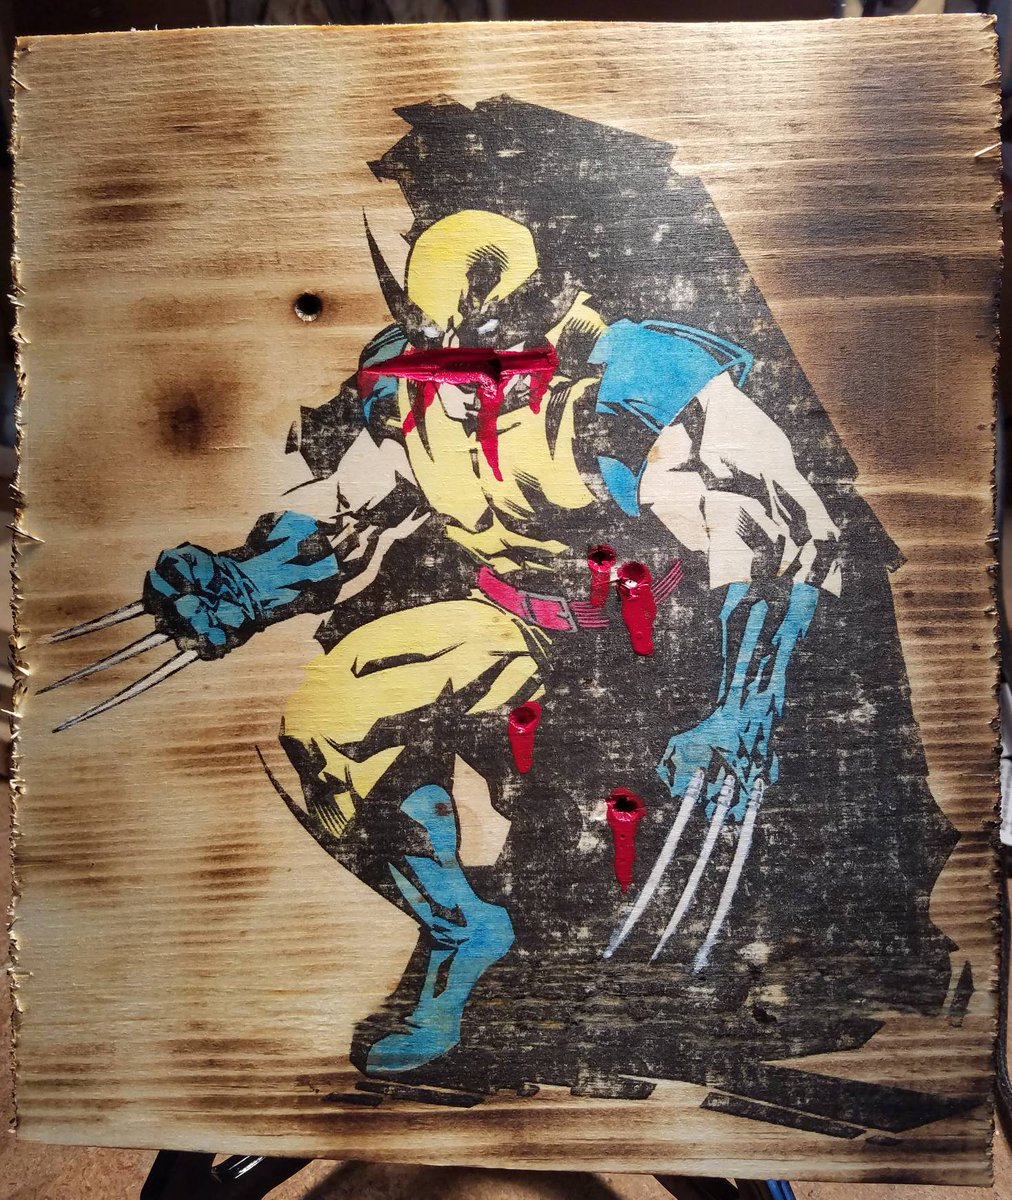 Wolverine Wednesday! And boy he had a rough one.  #Wolverine #xmen #woodworking #art #Logan #movie<br>http://pic.twitter.com/XwA2vuBedl